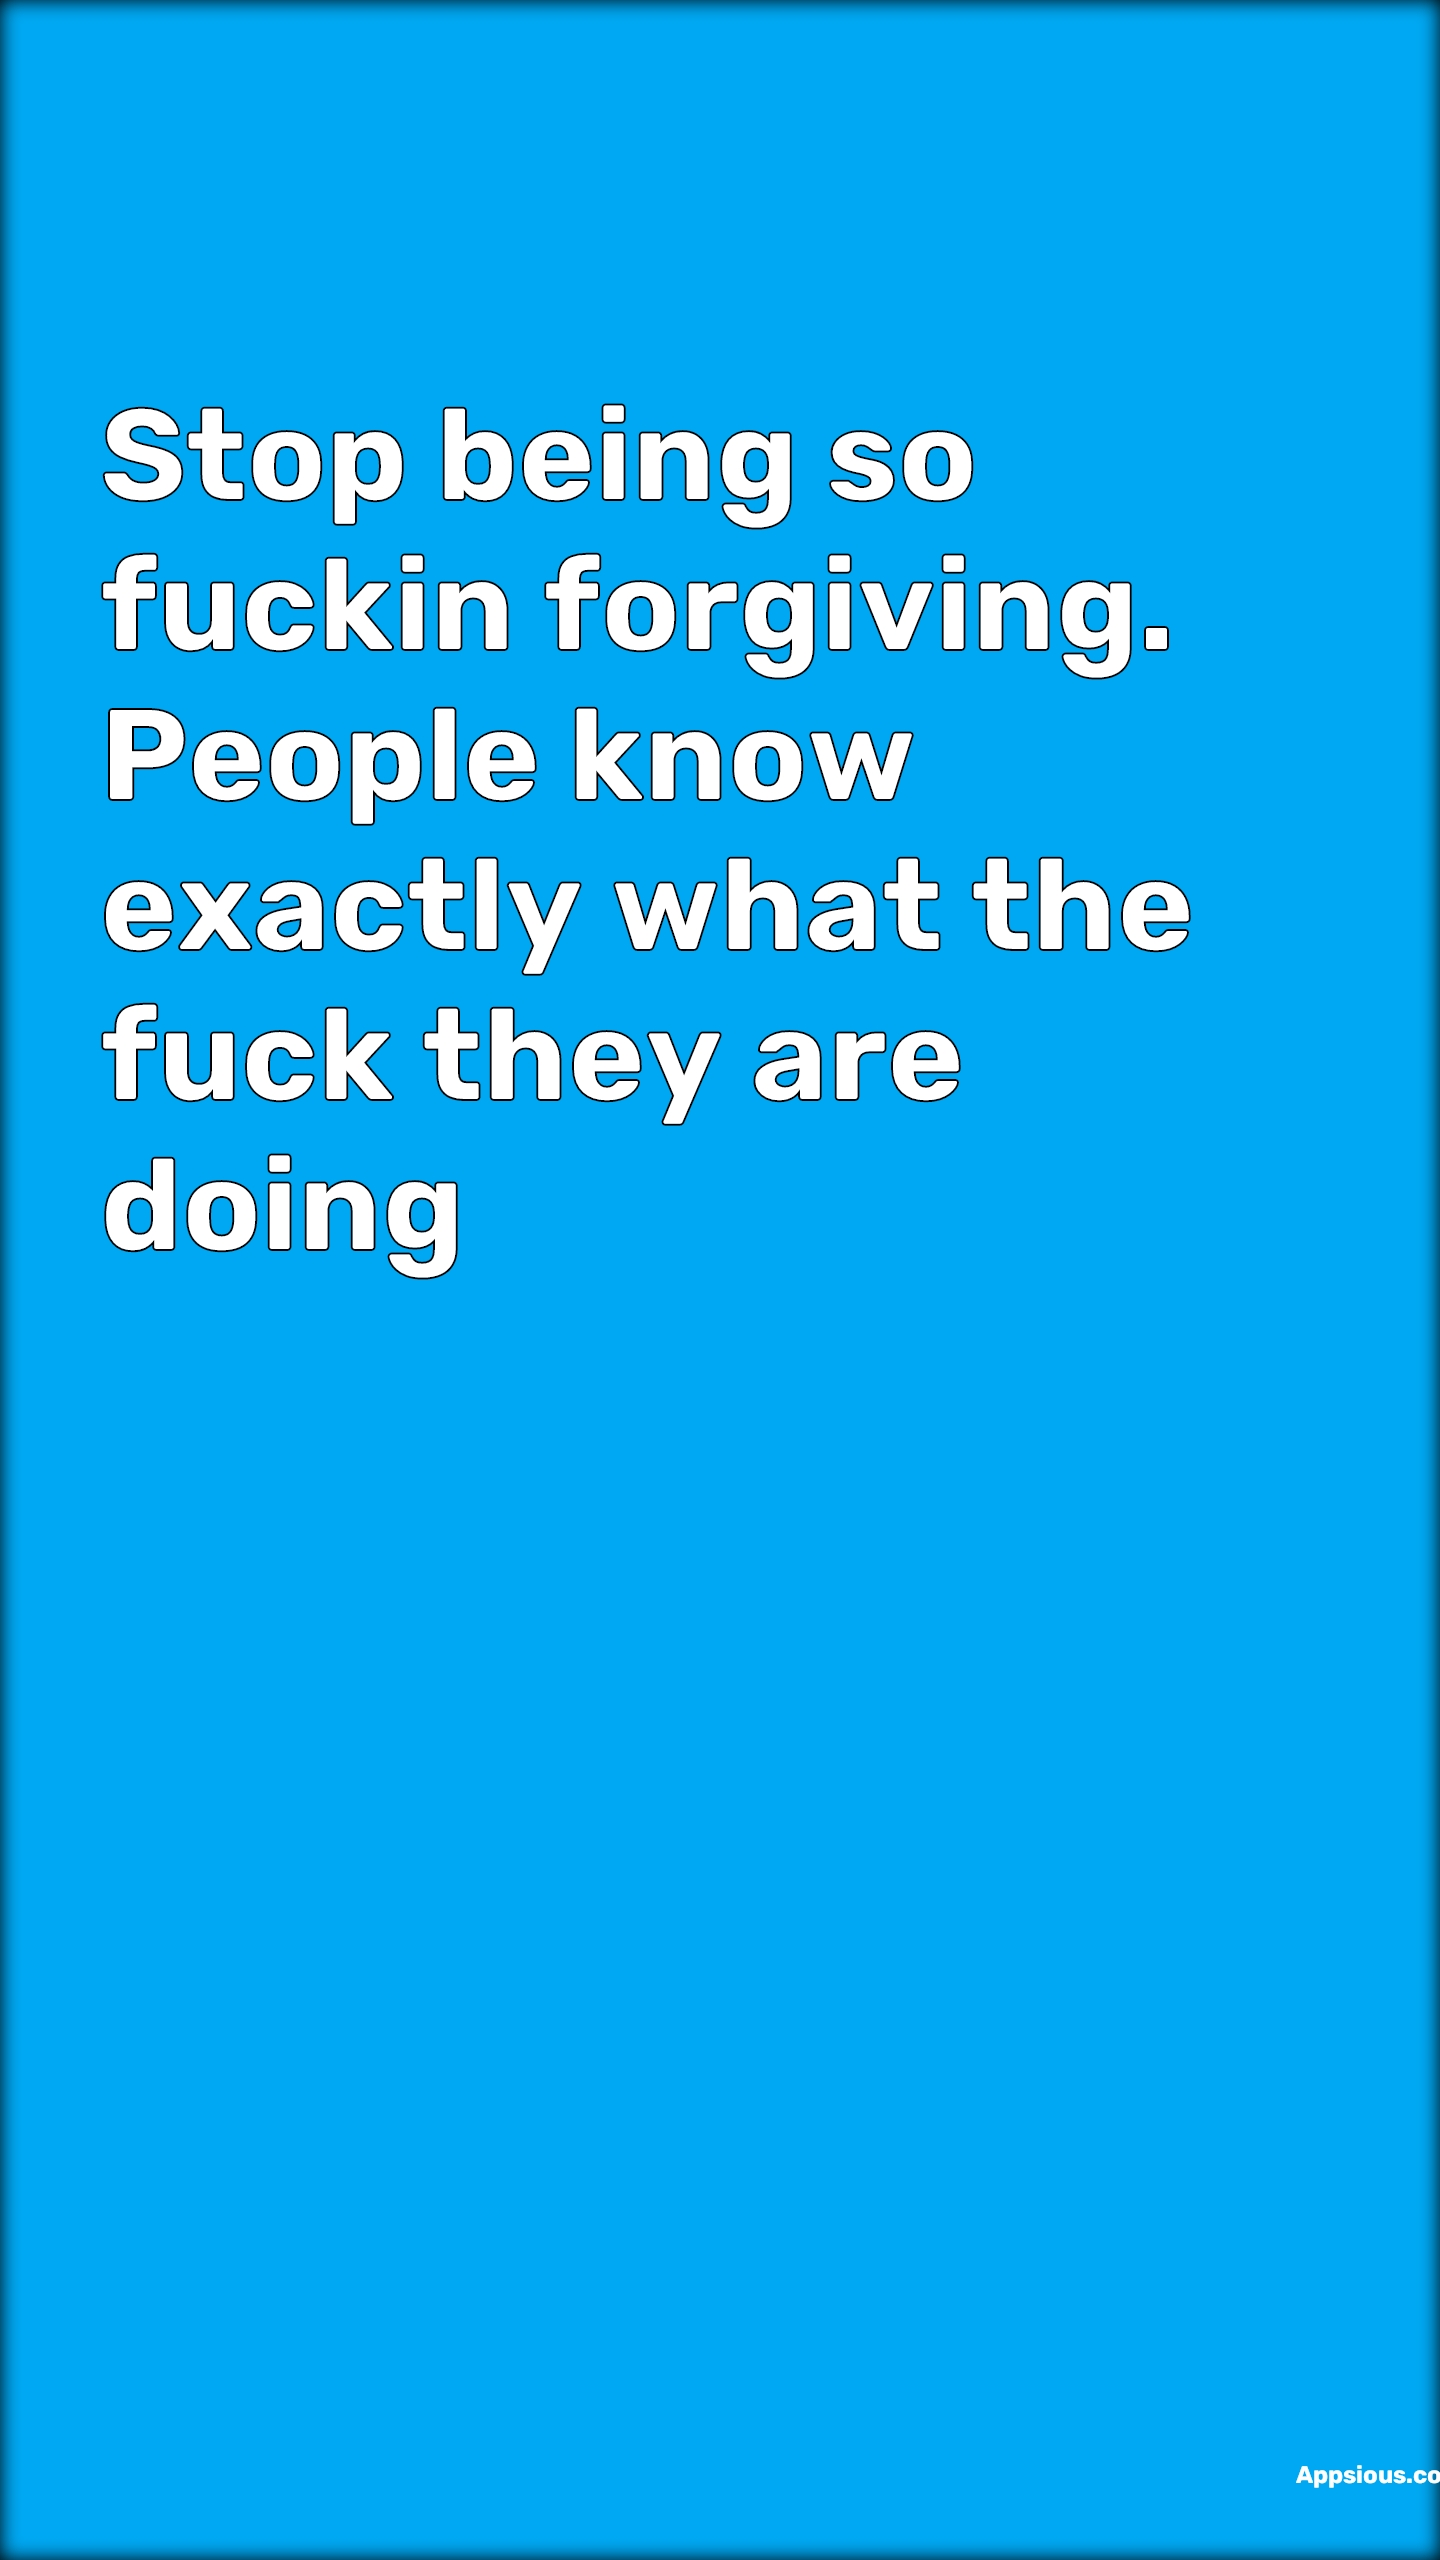 Stop being so fuckin forgiving. People know exactly what the fuck they are doing